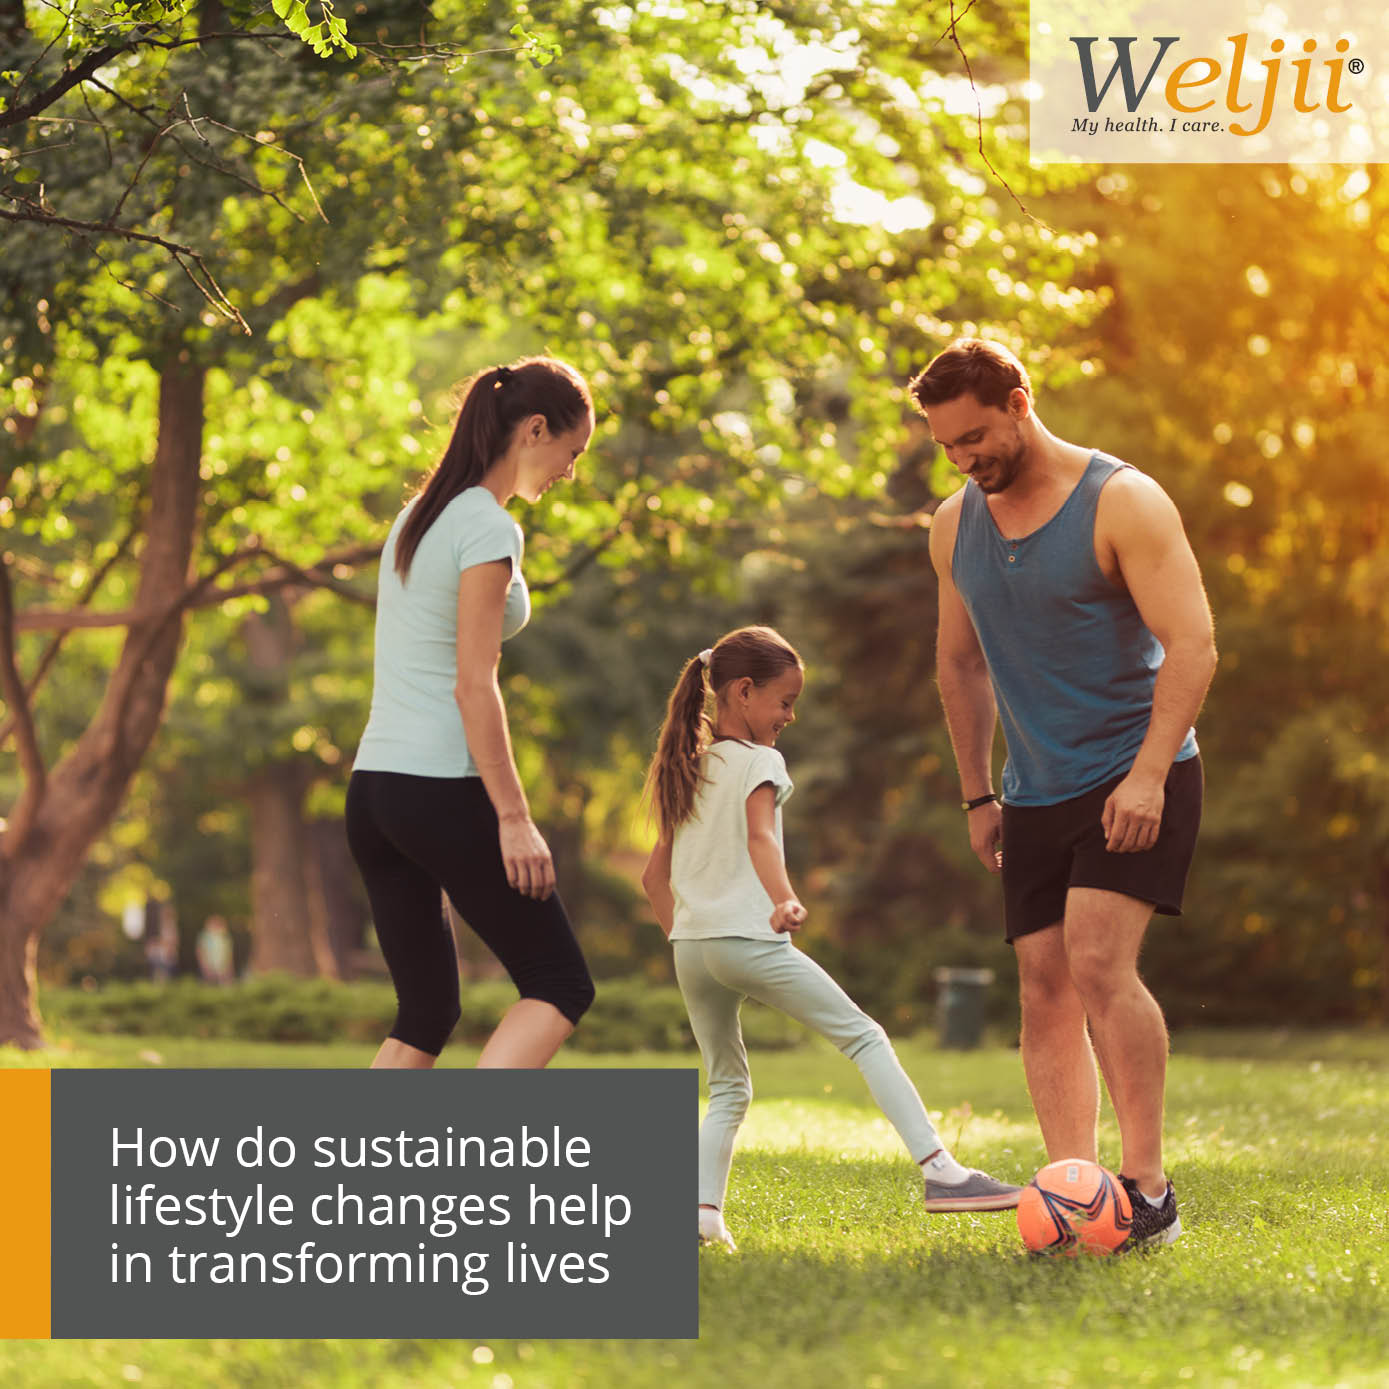 How do sustainable lifestyle changes help in transforming lives